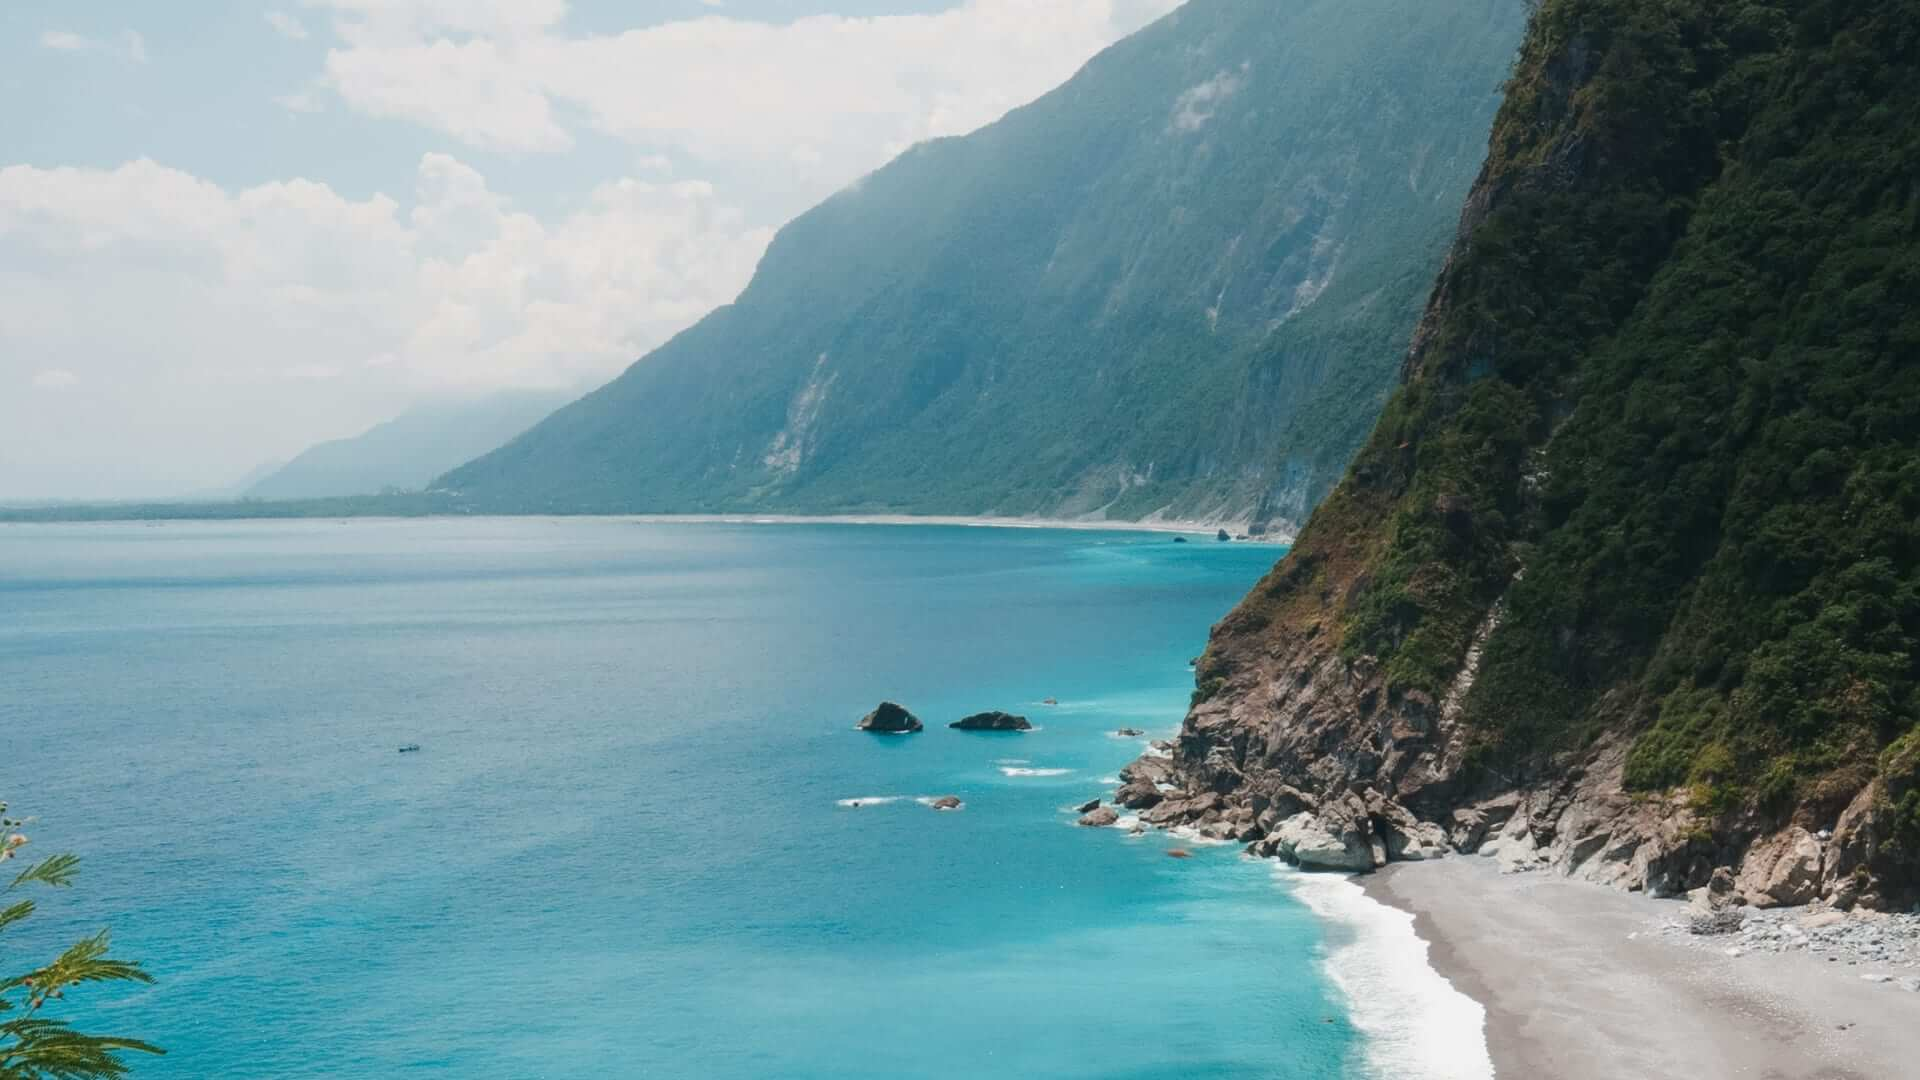 Student Life In Taiwan - Meet JuliaMountains next to a beach and the blue ocean in Taiwan.